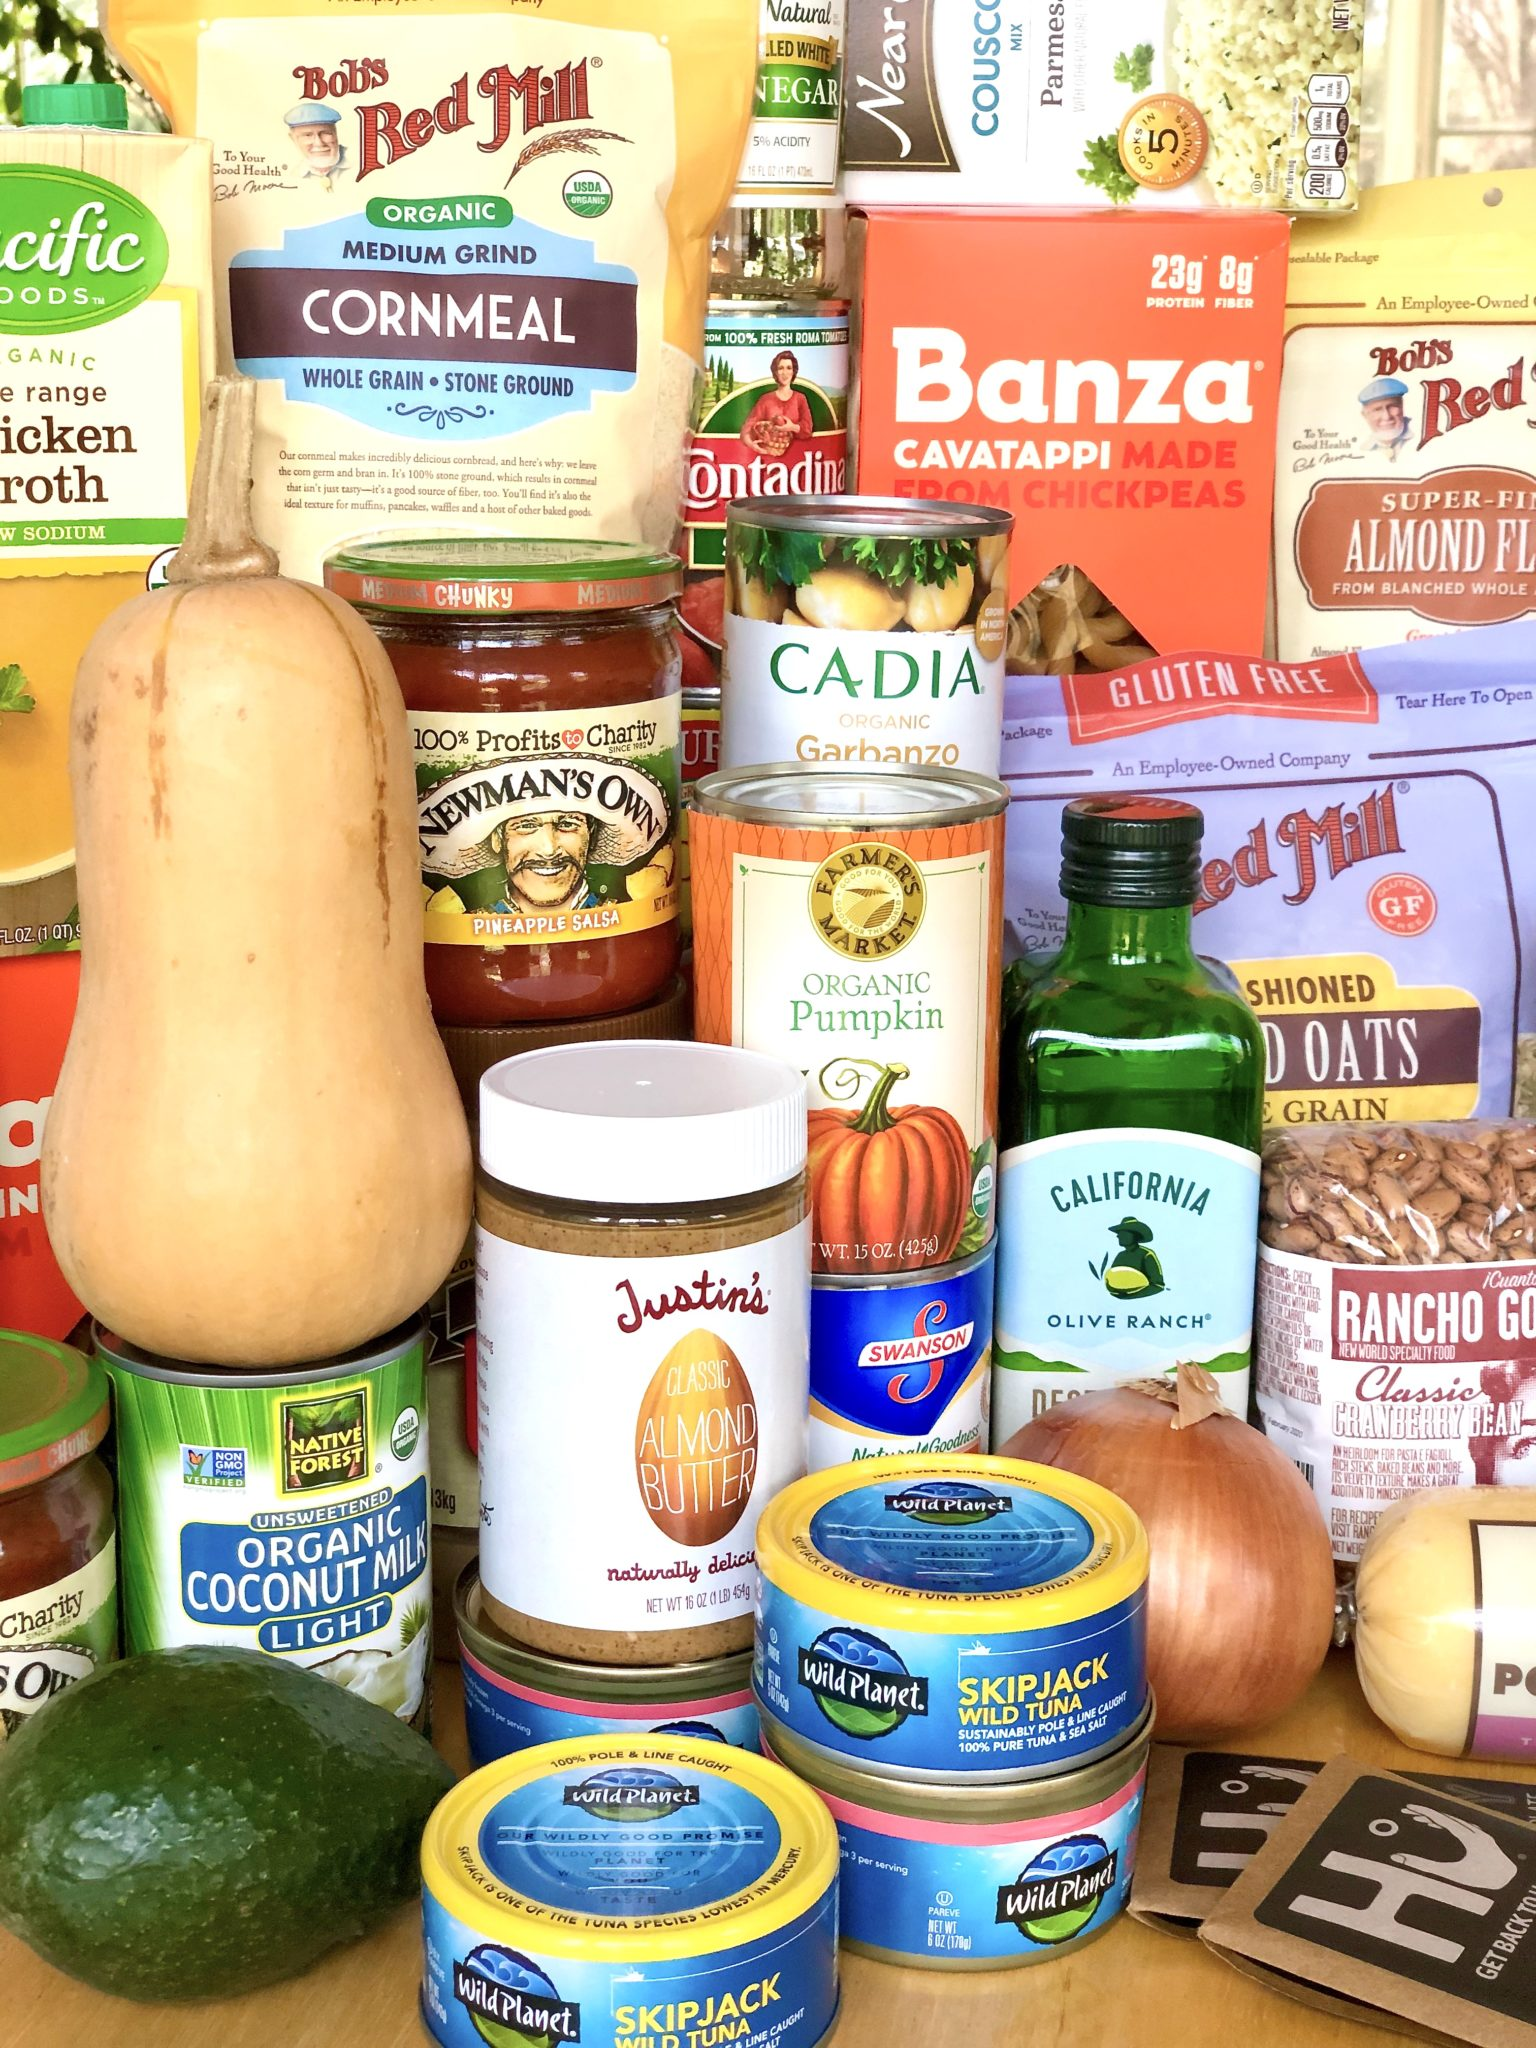 How to stock the perfect pantry (and freezer) for your own tastes and needs-and then cooking creatively from it-is easy with the following tips and ideas.